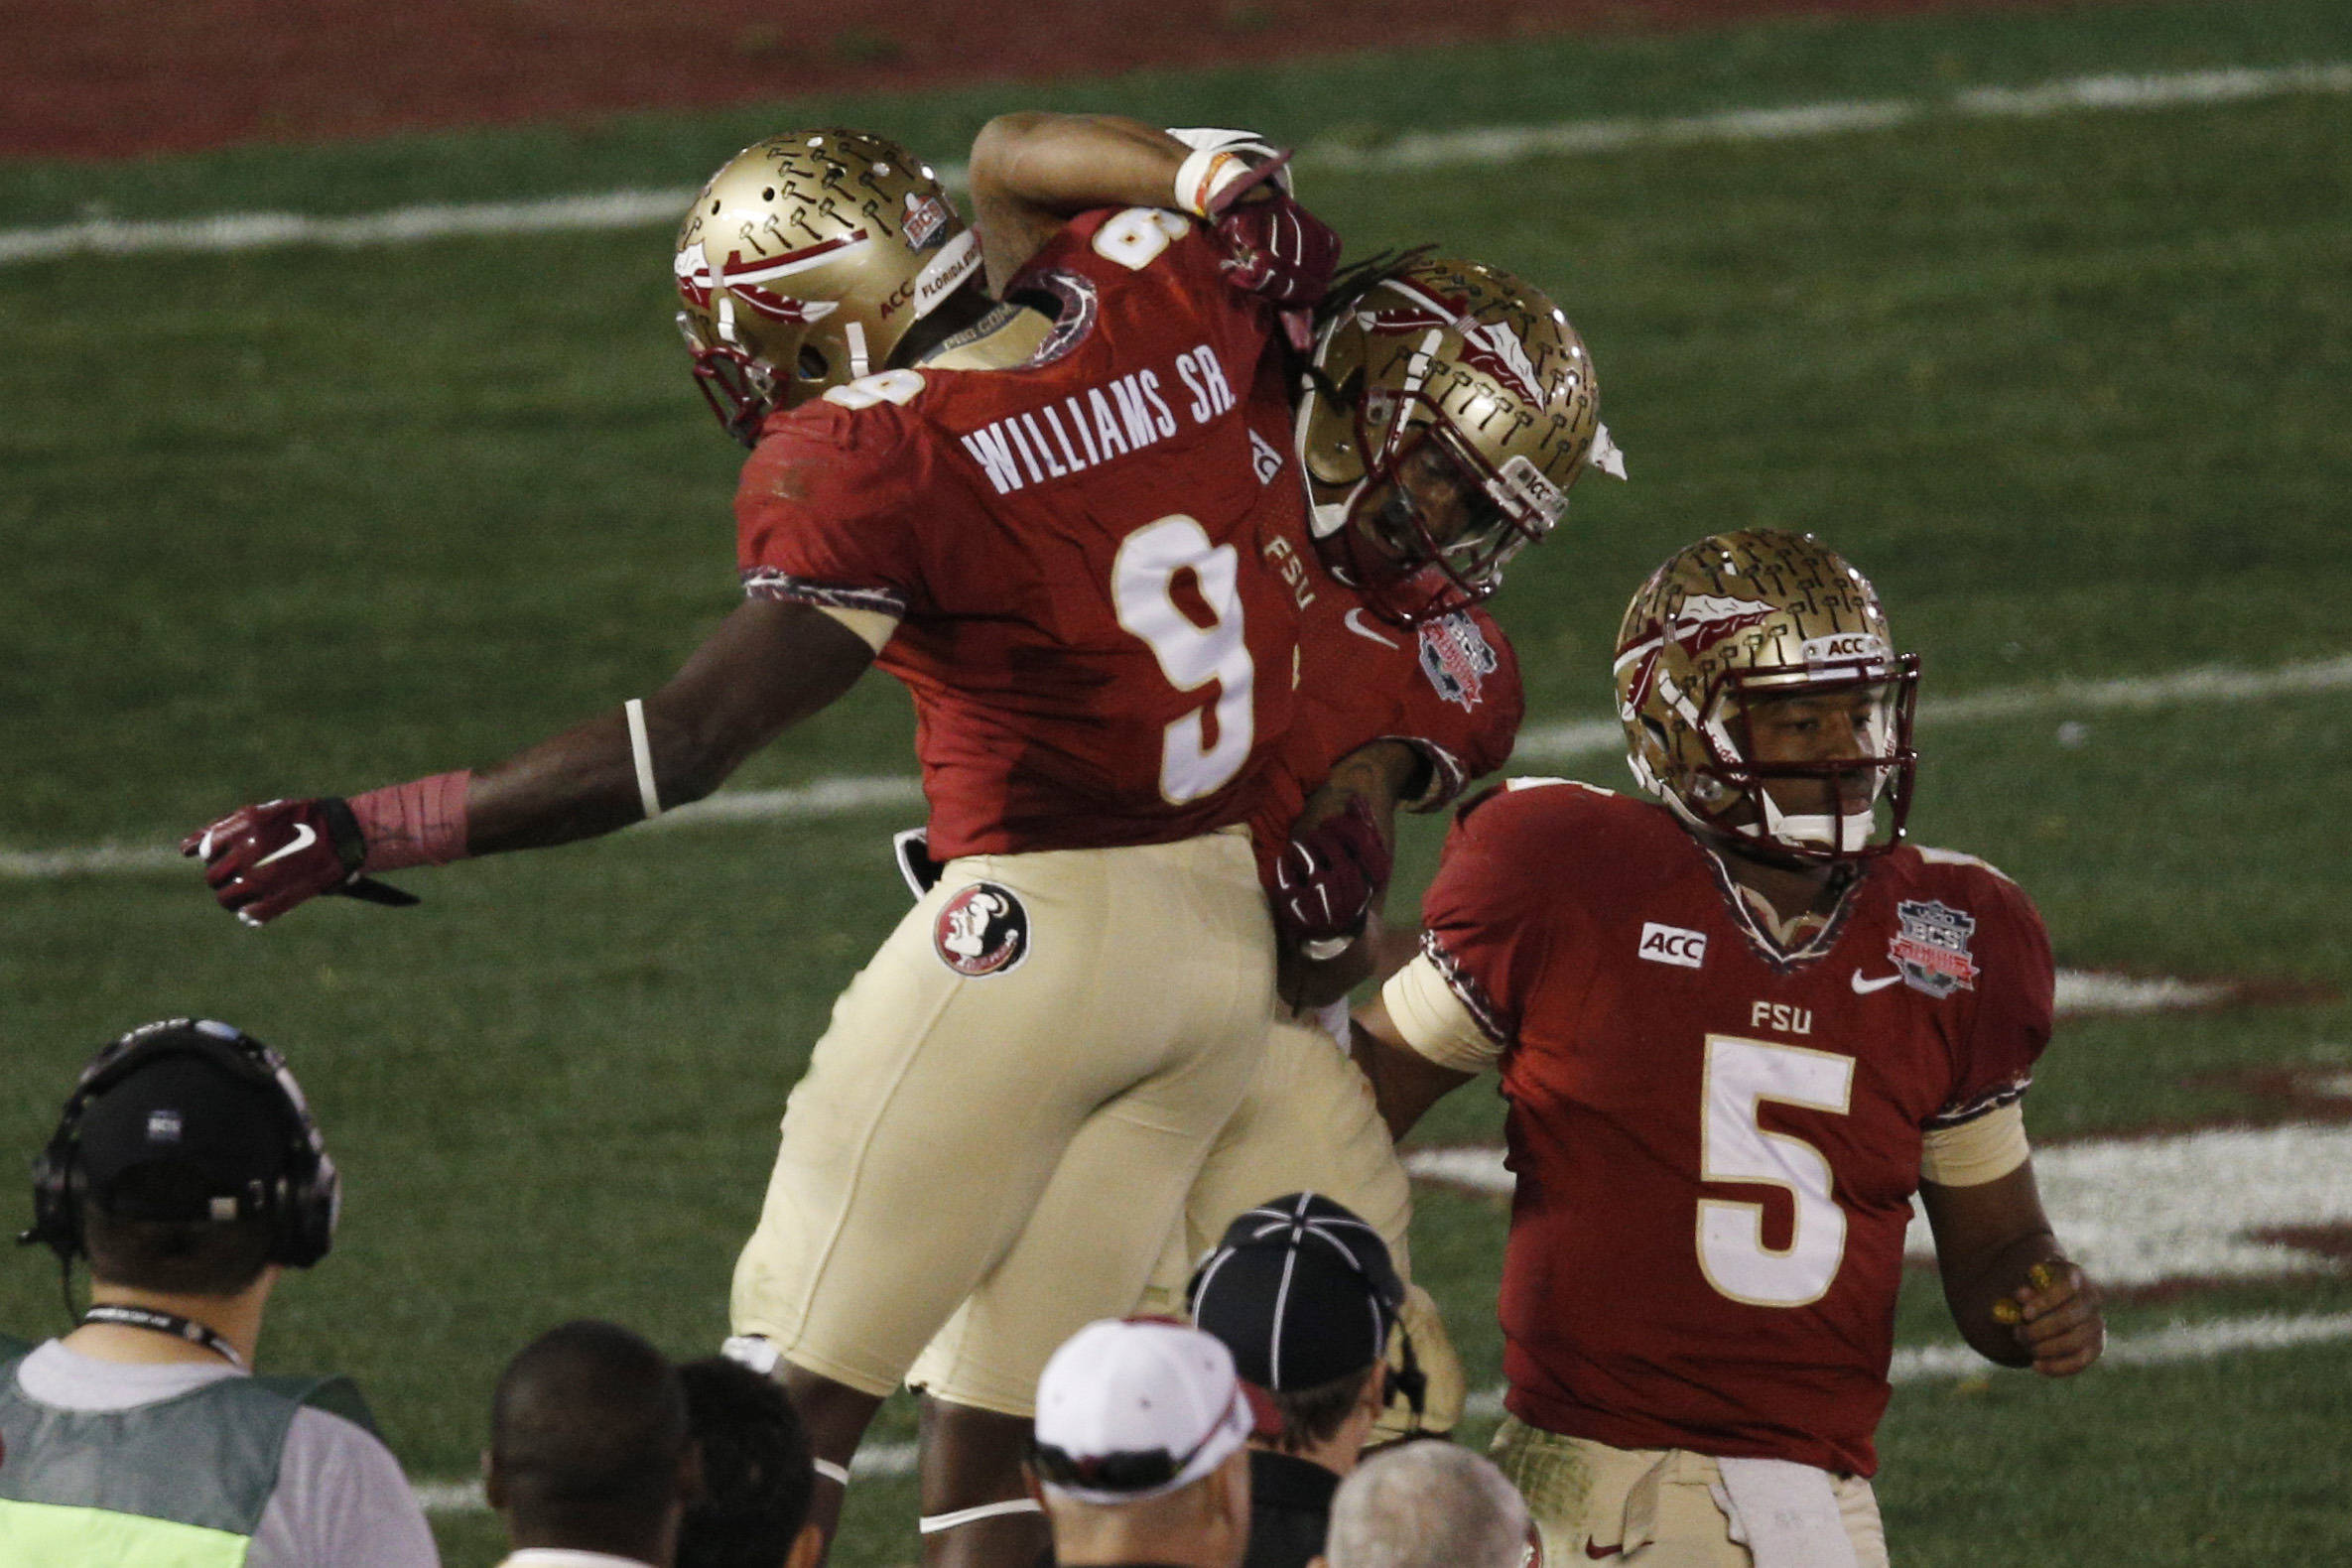 Jan 6, 2014; Pasadena, CA, USA; Florida State Seminoles running back Karlos Williams (9) congratulates running back Devonta Freeman (8) in front of quarterback Jameis Winston (5) after Freeman scored a touchdown against the Auburn Tigers during the first half of the 2014 BCS National Championship game at the Rose Bowl.  Mandatory Credit: Kelvin Kuo-USA TODAY Sports